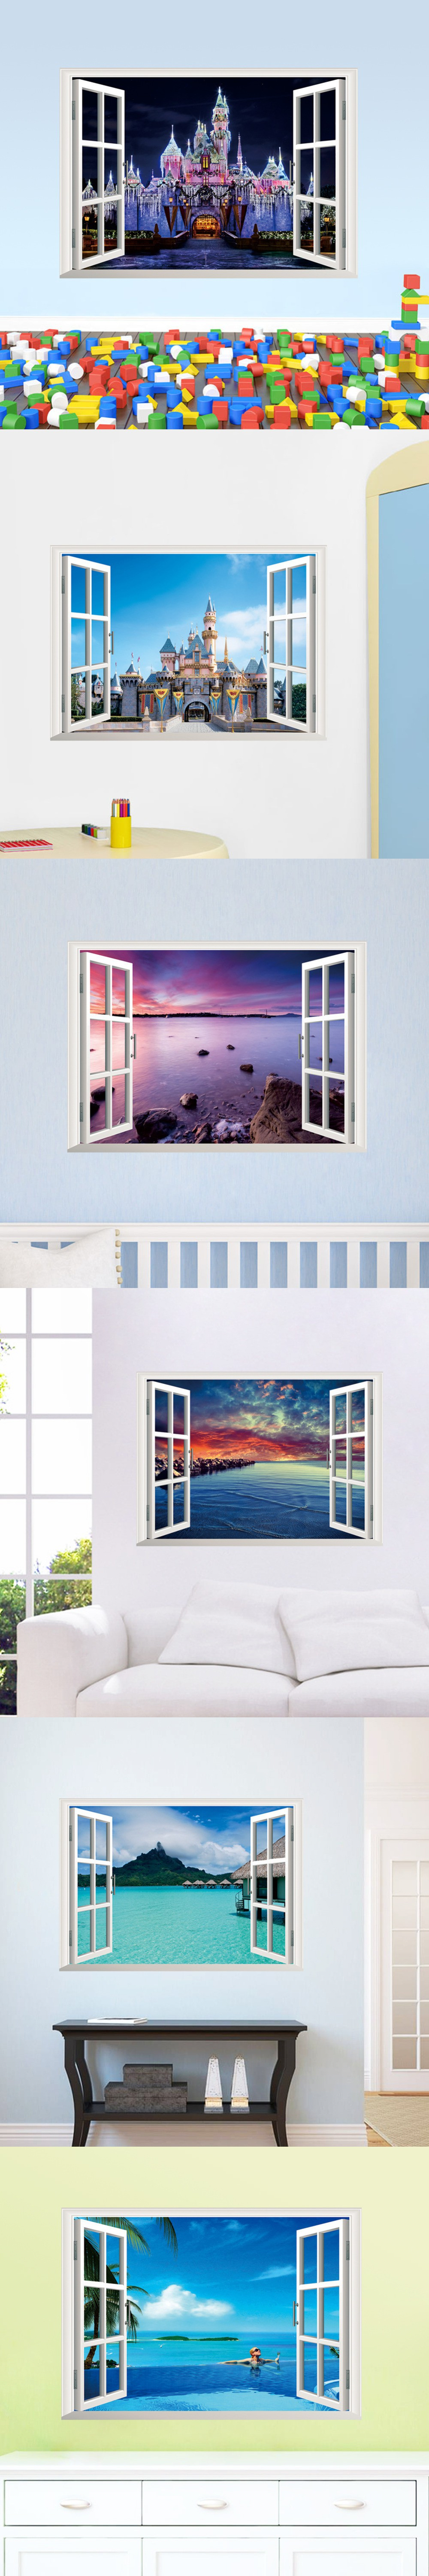 Window decor stickers  exotic beach view d window decal castle wall sticker home decor art